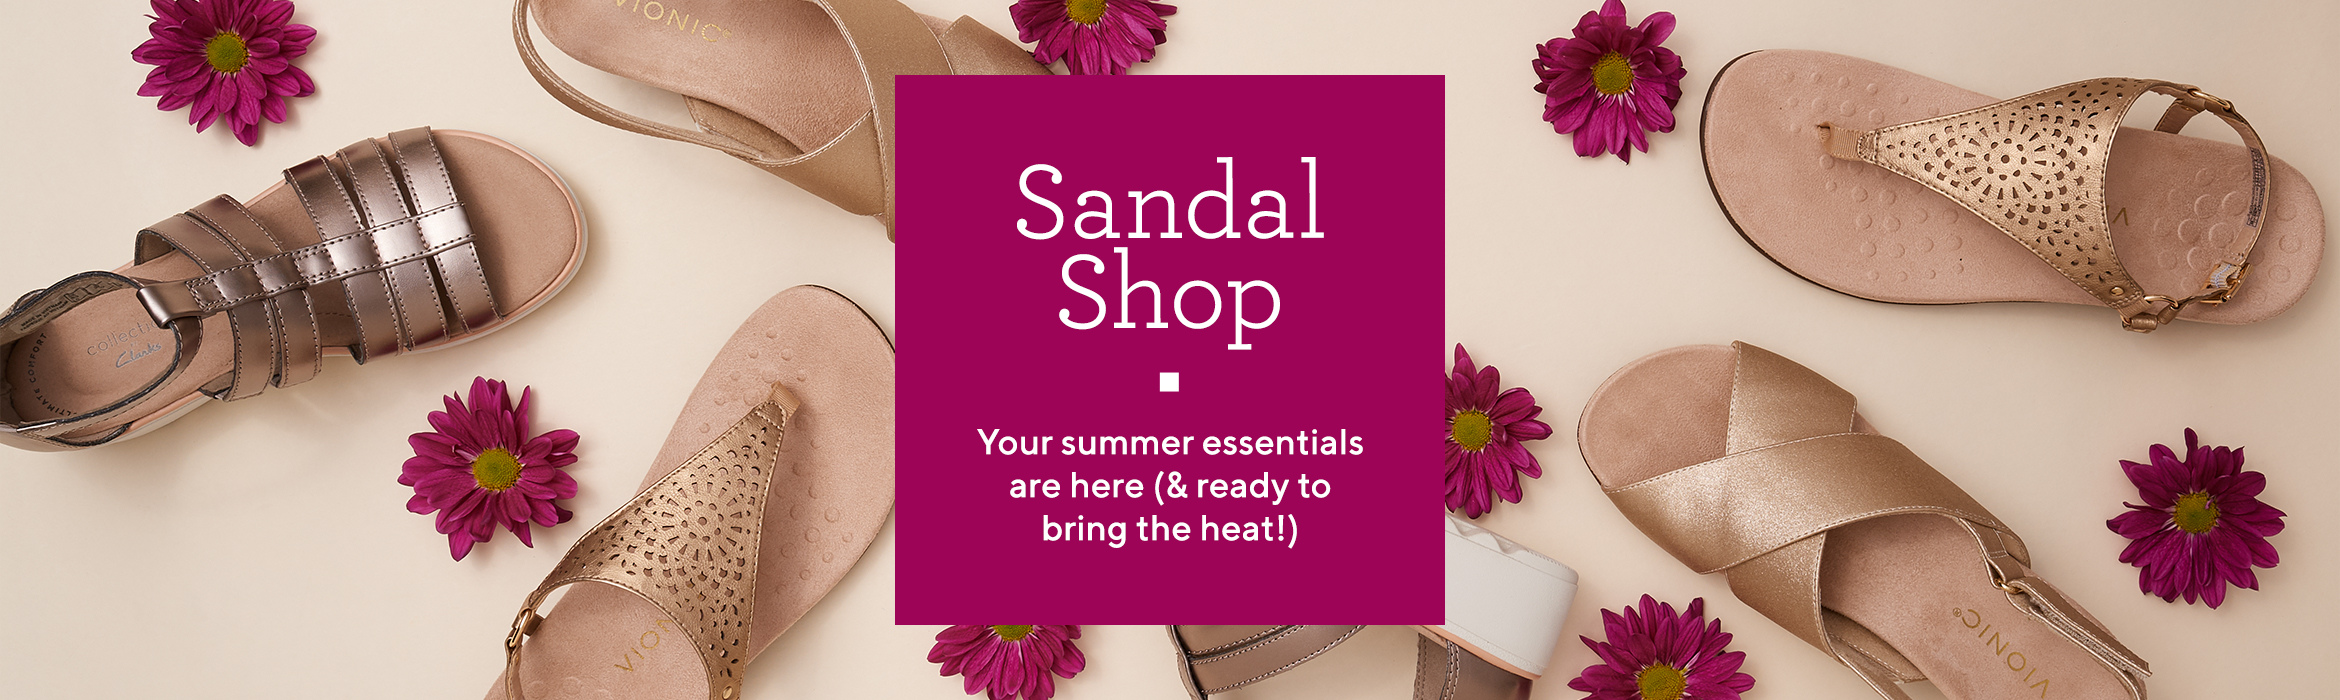 Sandal Shop: Your summer essentials are here (& ready to bring the heat!)